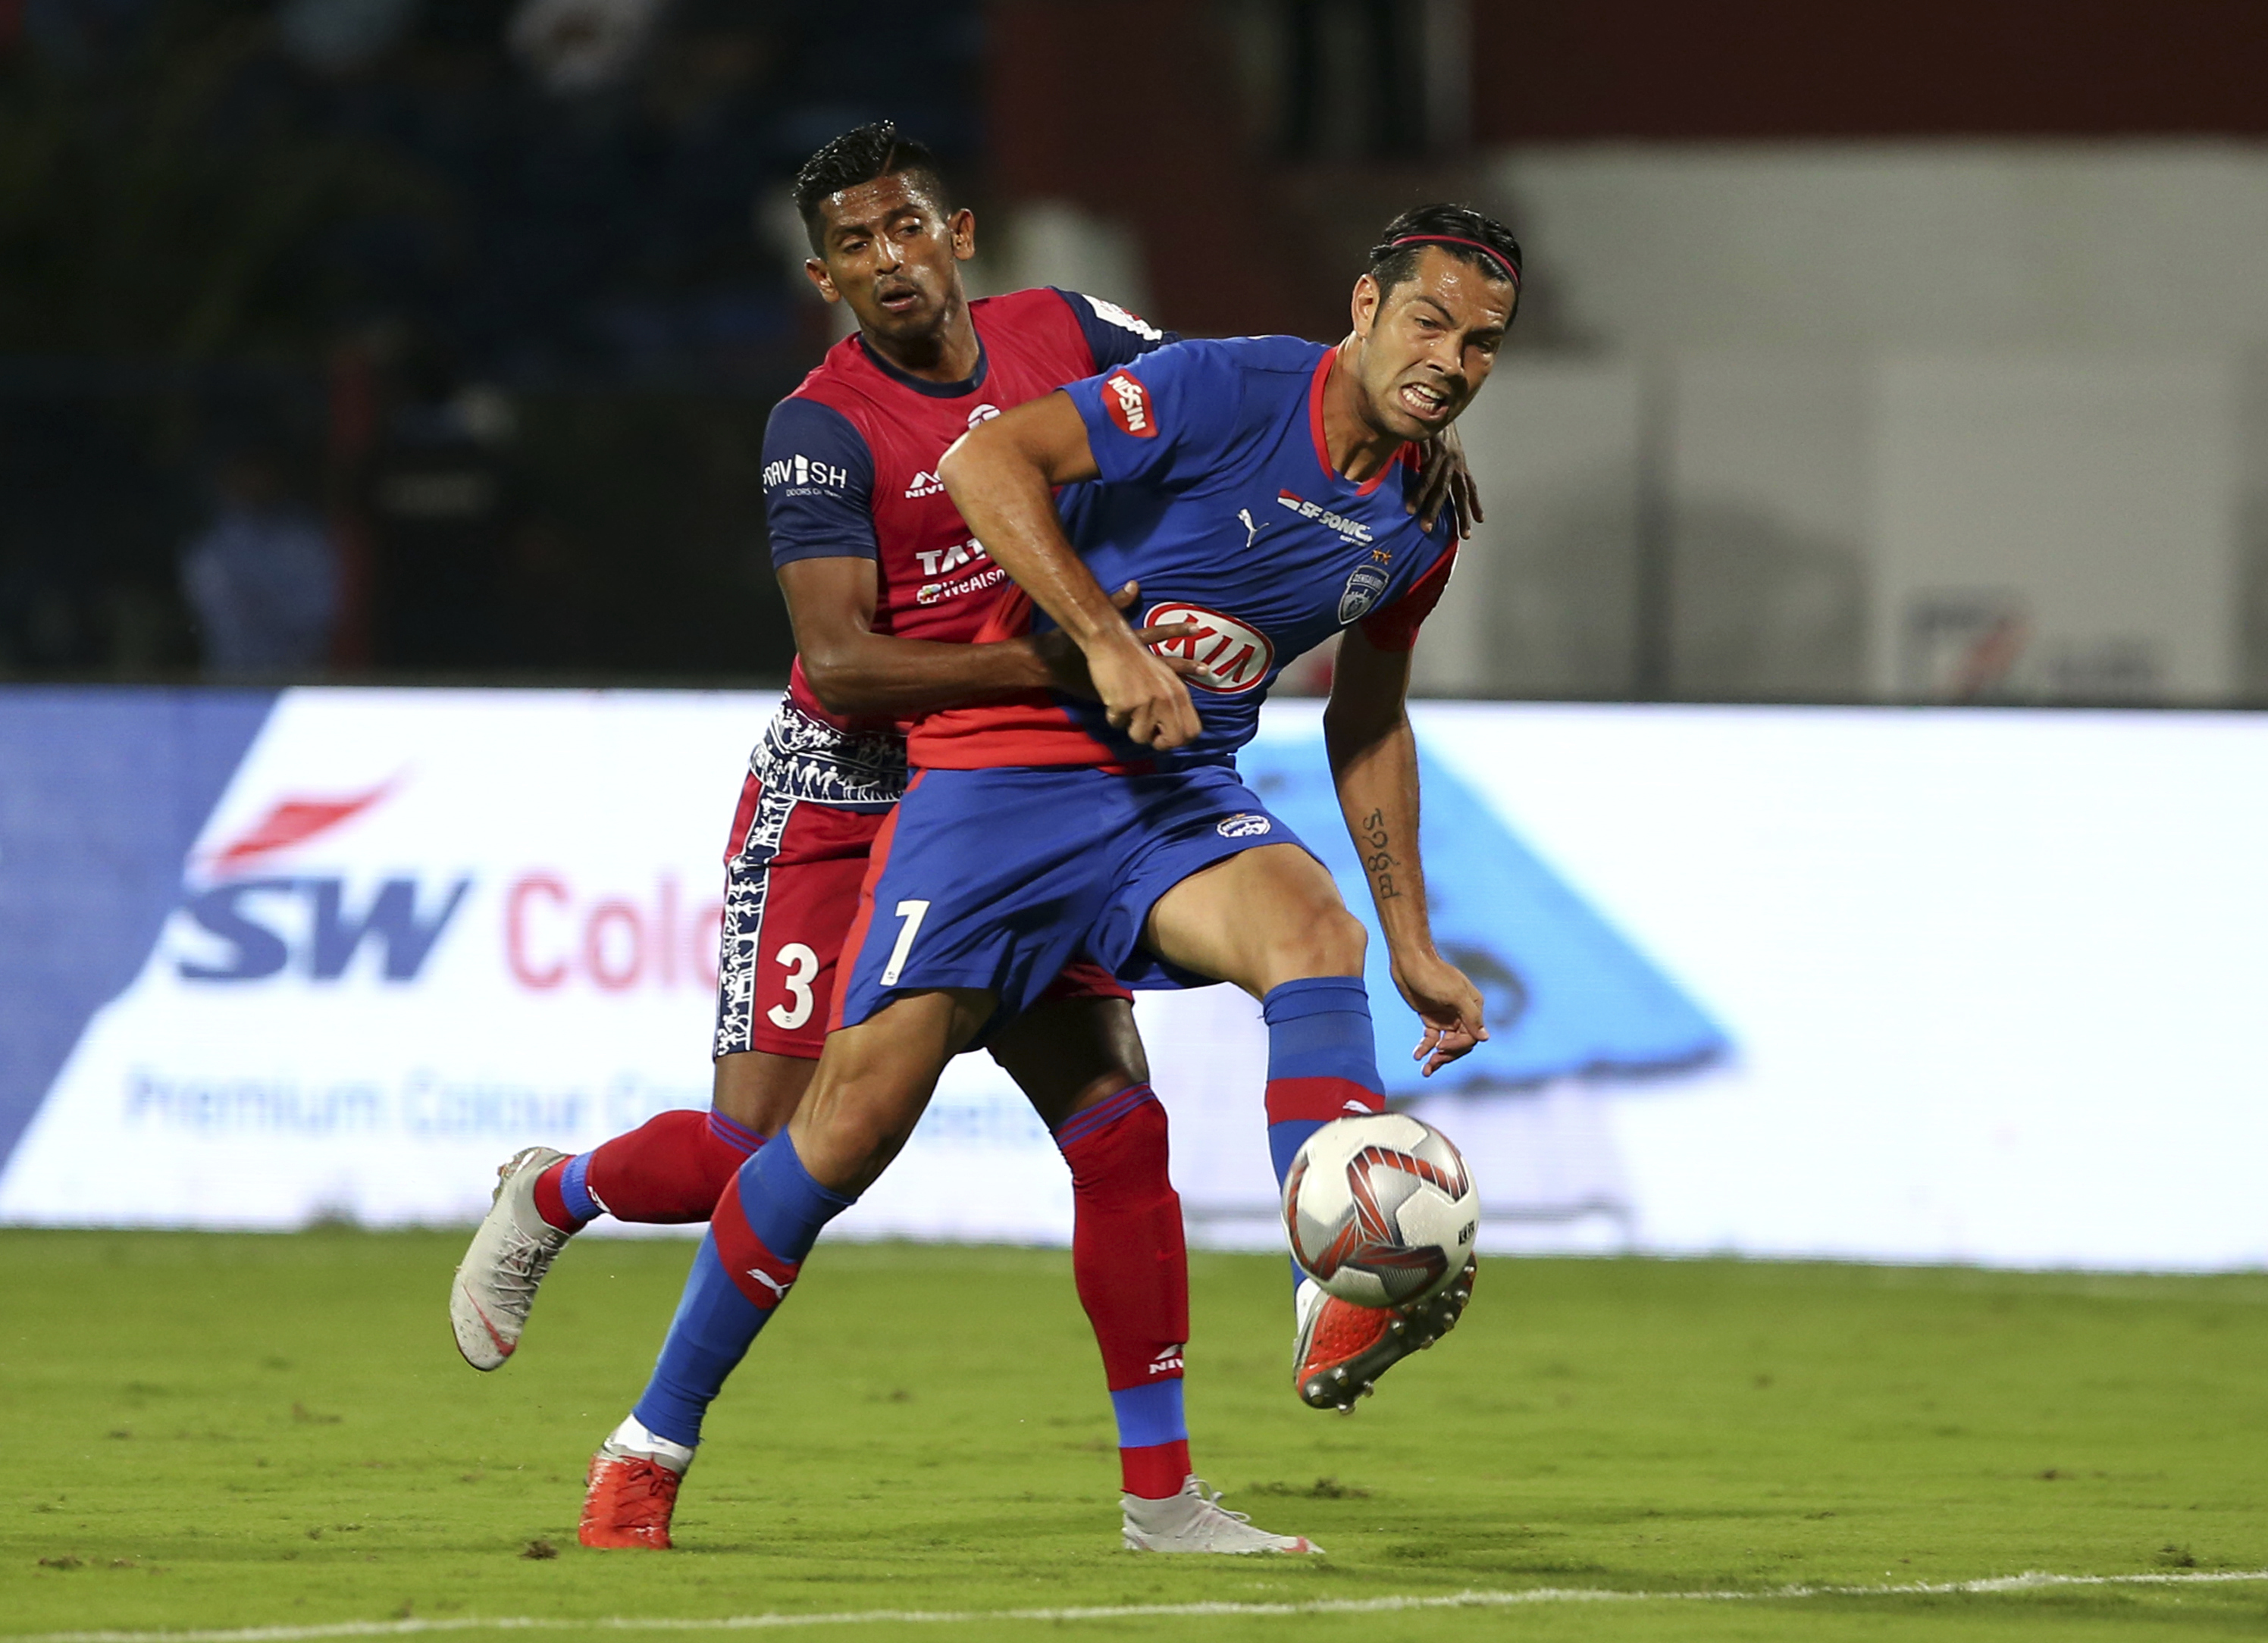 Nicolas Fedor, right, of Bengaluru FC and Raju Gaikwad of Jamshedpur FC fight for the ball during the Hero Indian Super League (ISL) soccer match between Bengaluru FC and Jamshedpur FC in Bangalore - AP